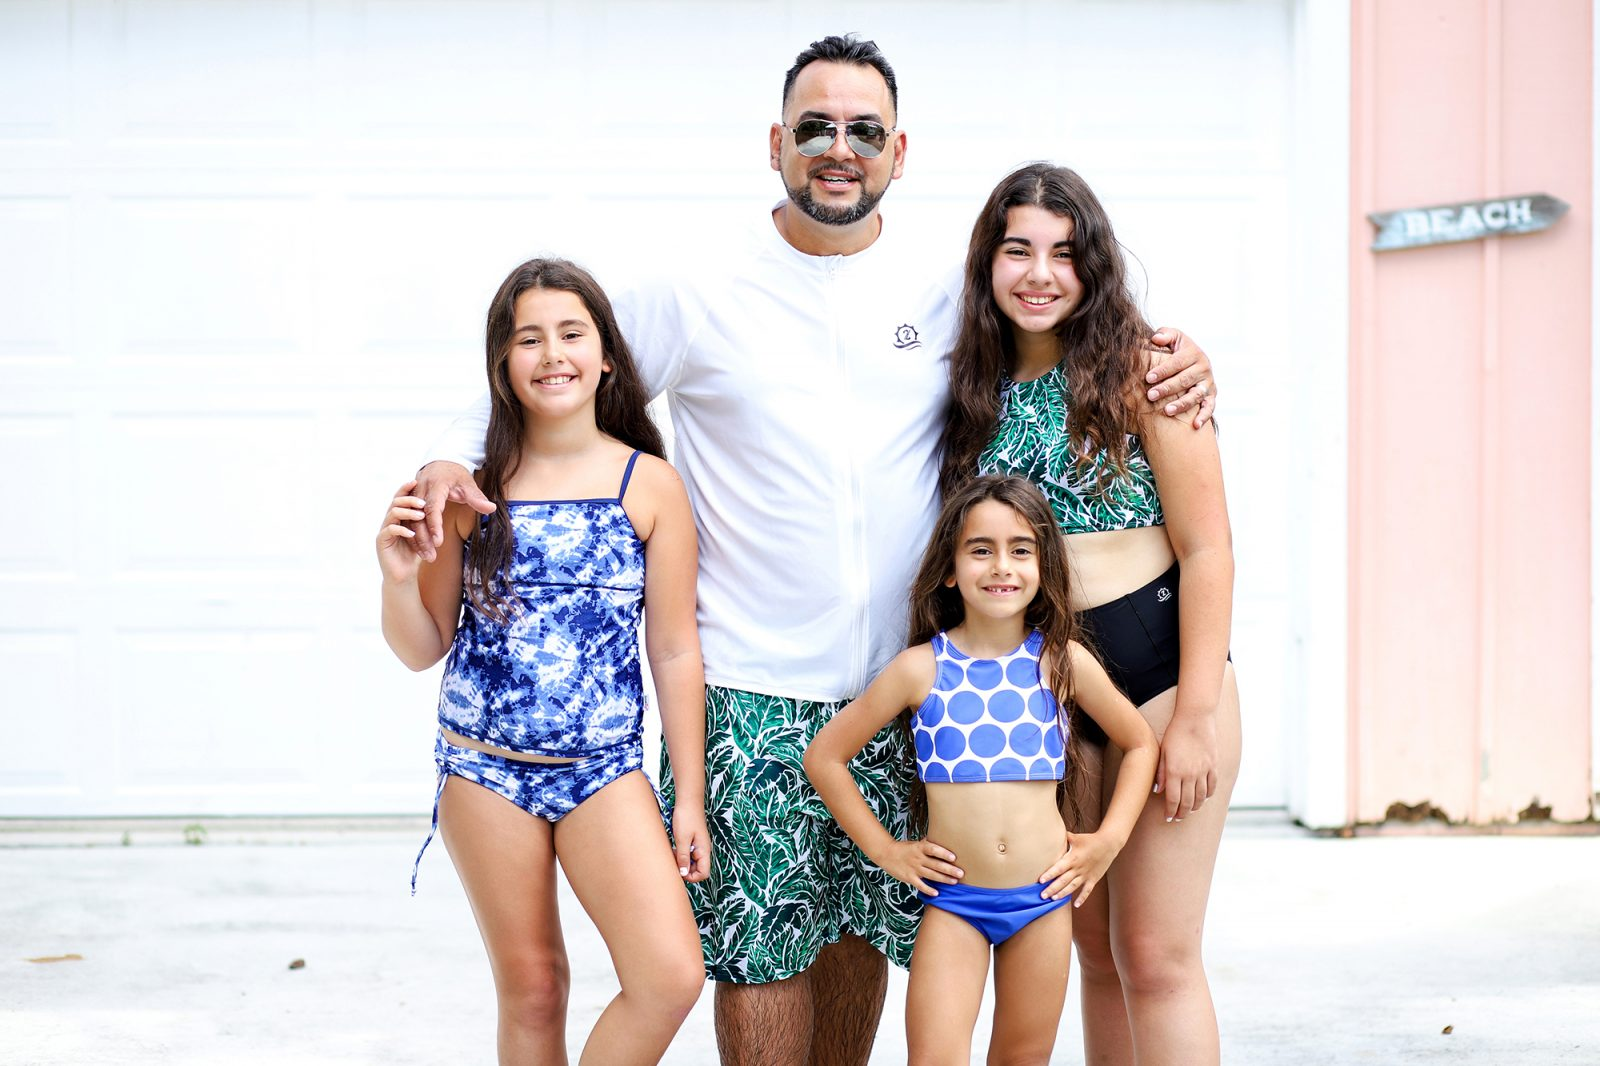 Family at an AirBnB wearing SwimZip